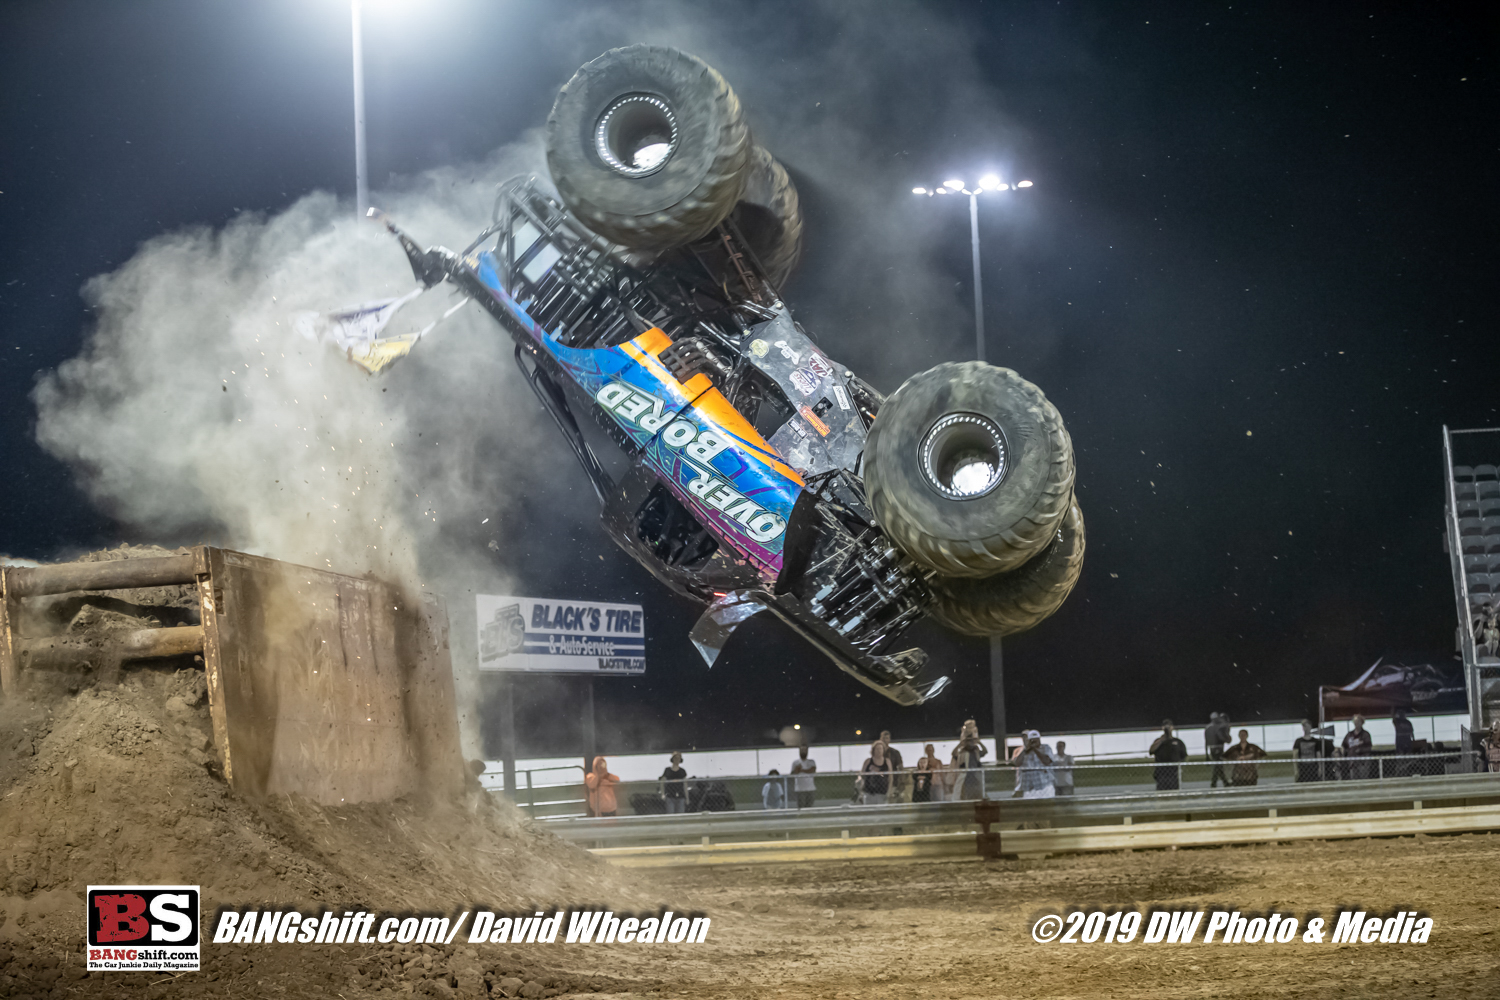 Monster Truckin': Action Photos From The GALOT Motorsports Park Monster Truck Throwdown!